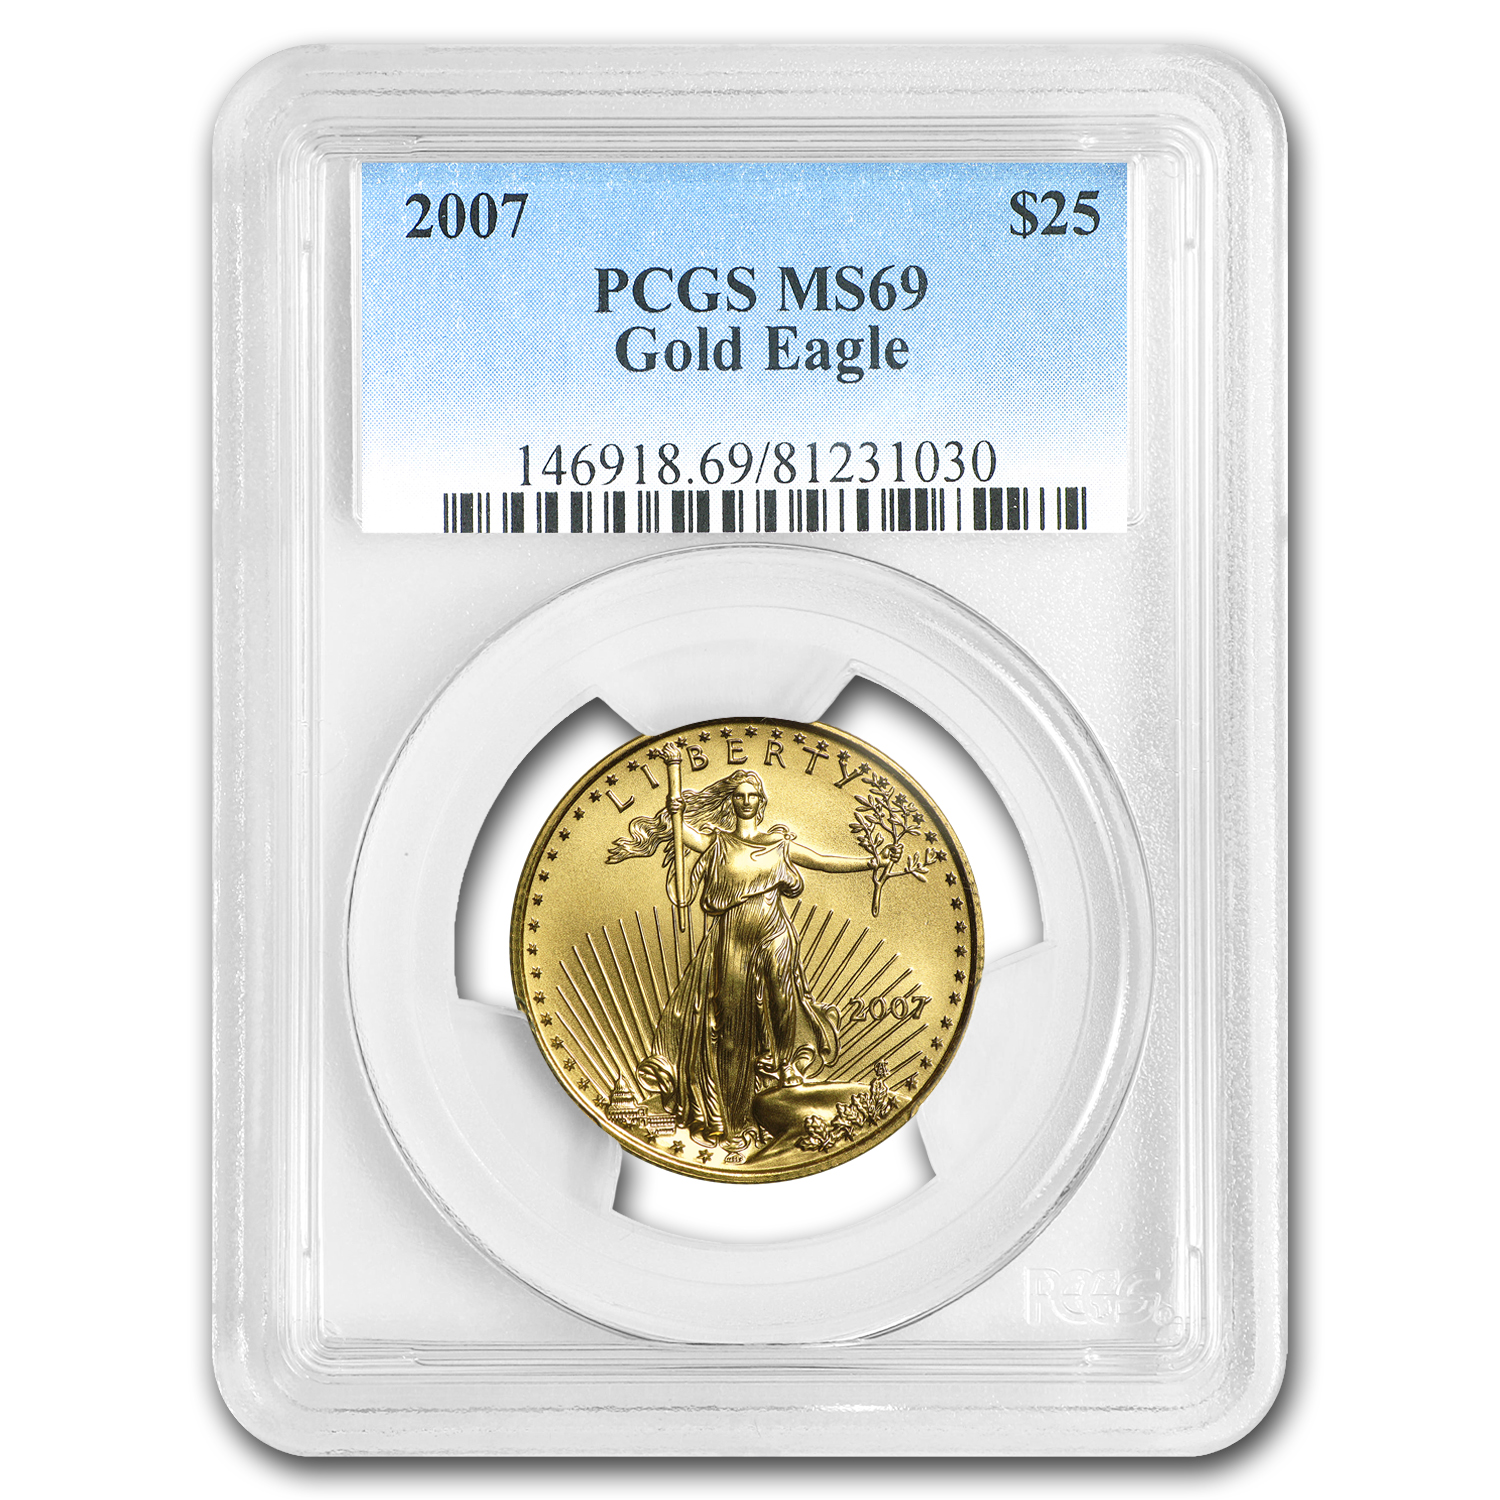 2007 1/2 oz Gold American Eagle MS-69 PCGS